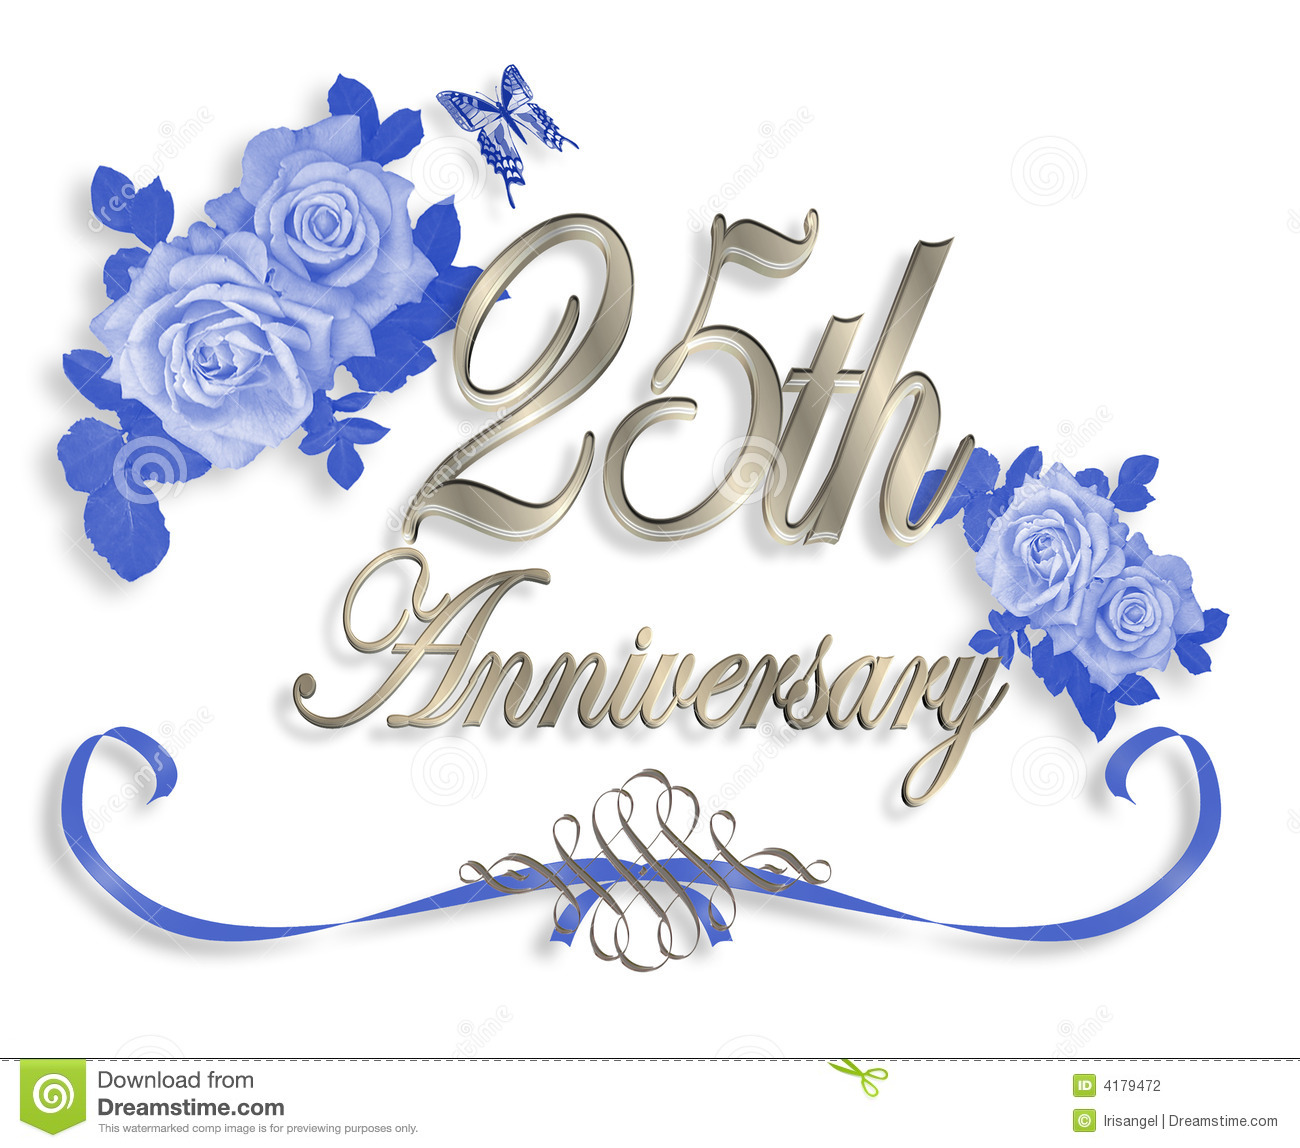 25th Anniversary Clipart Group with 54+ items jpg freeuse library